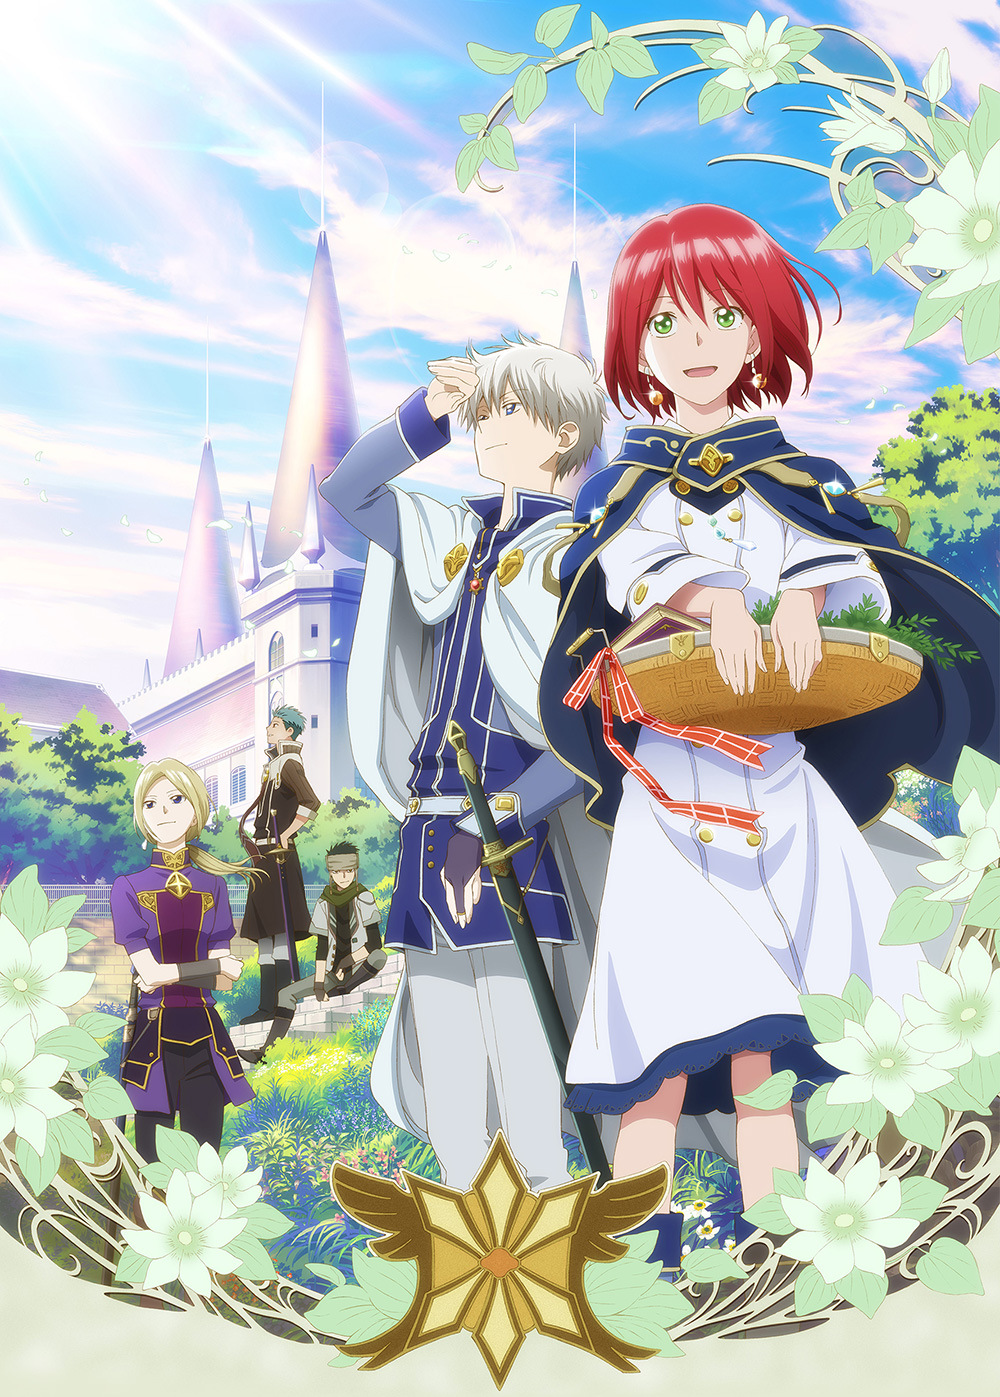 Akagami-no-Shirayuki-hime-Anime-Visual-01